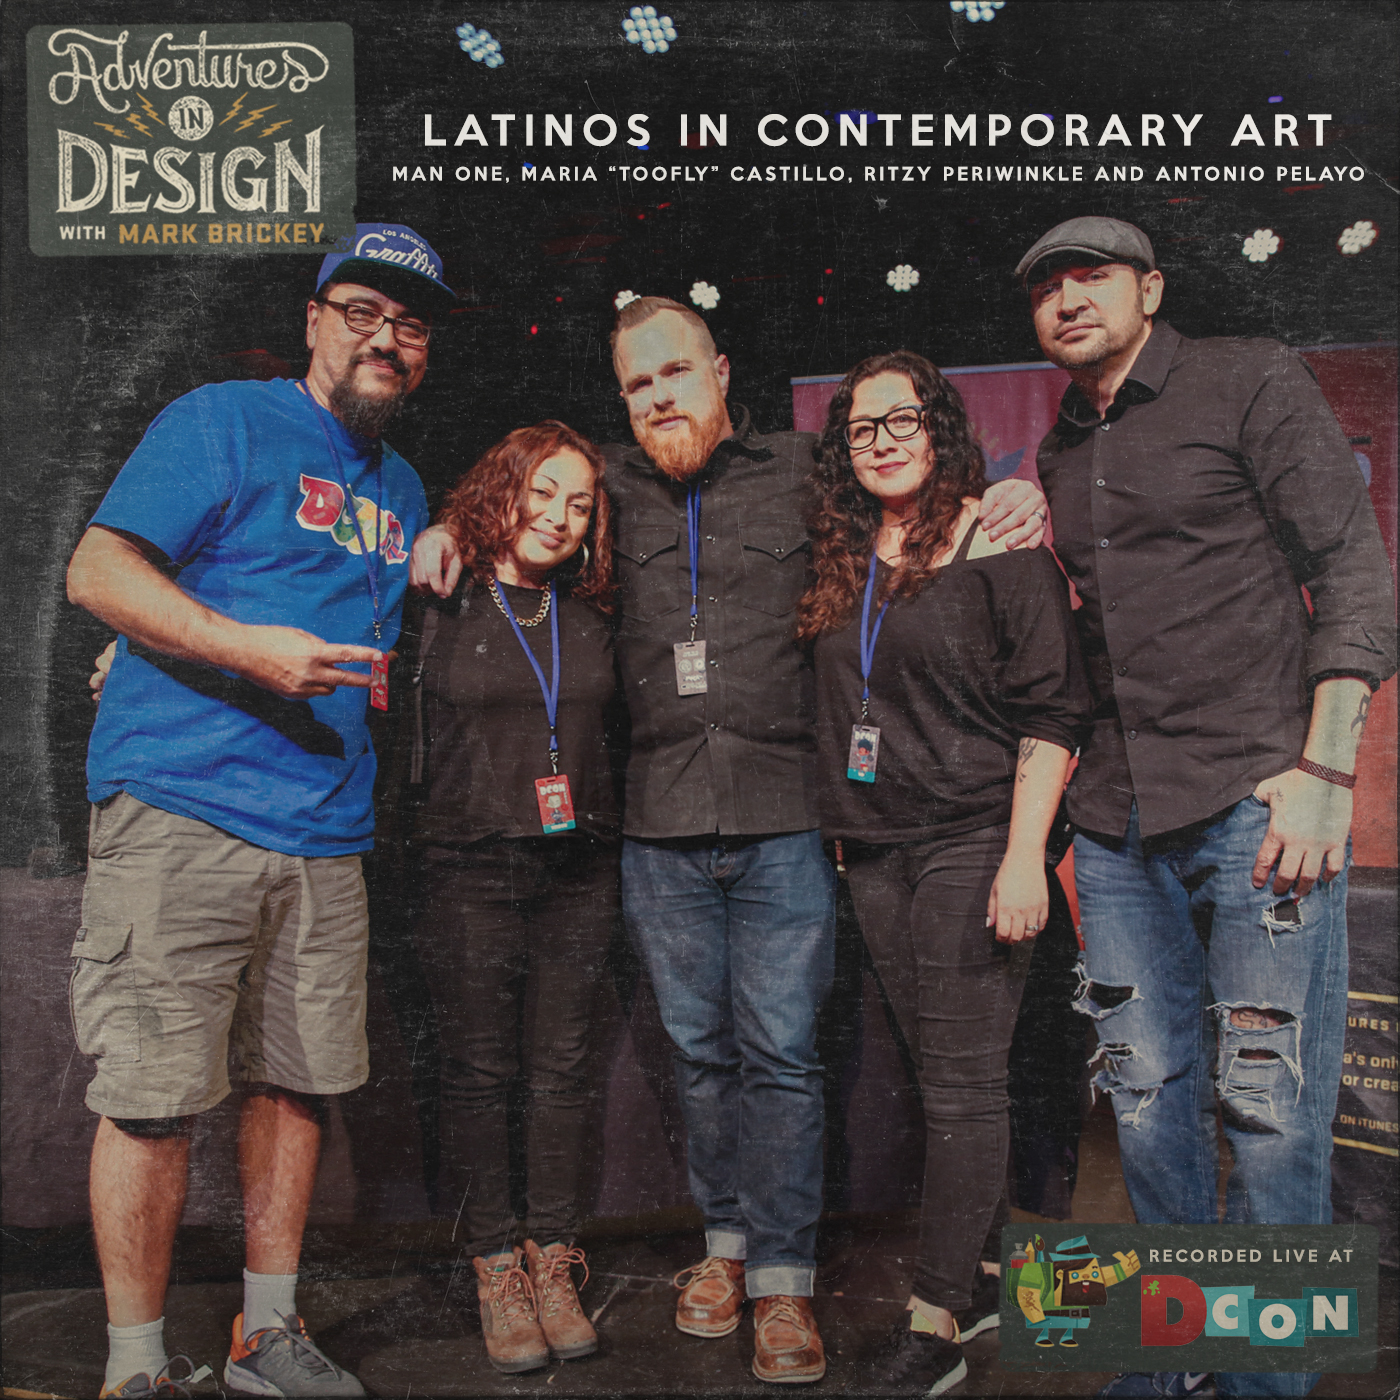 493 - Latinos In Contemporary Art with Man One, Maria